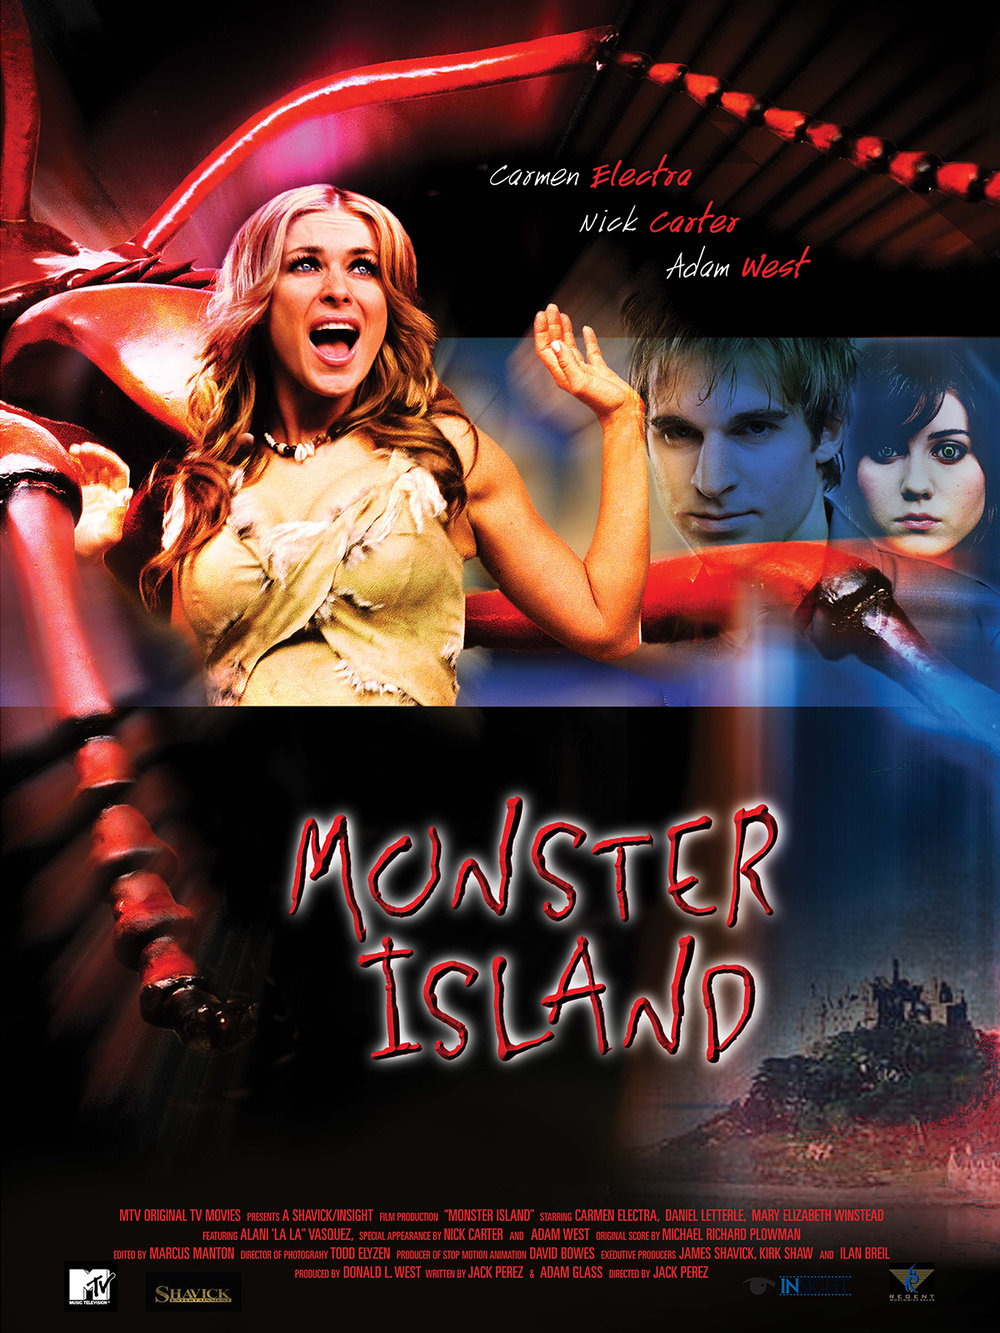 Here-MonsterIsland-Full-Image-en-US.jpg